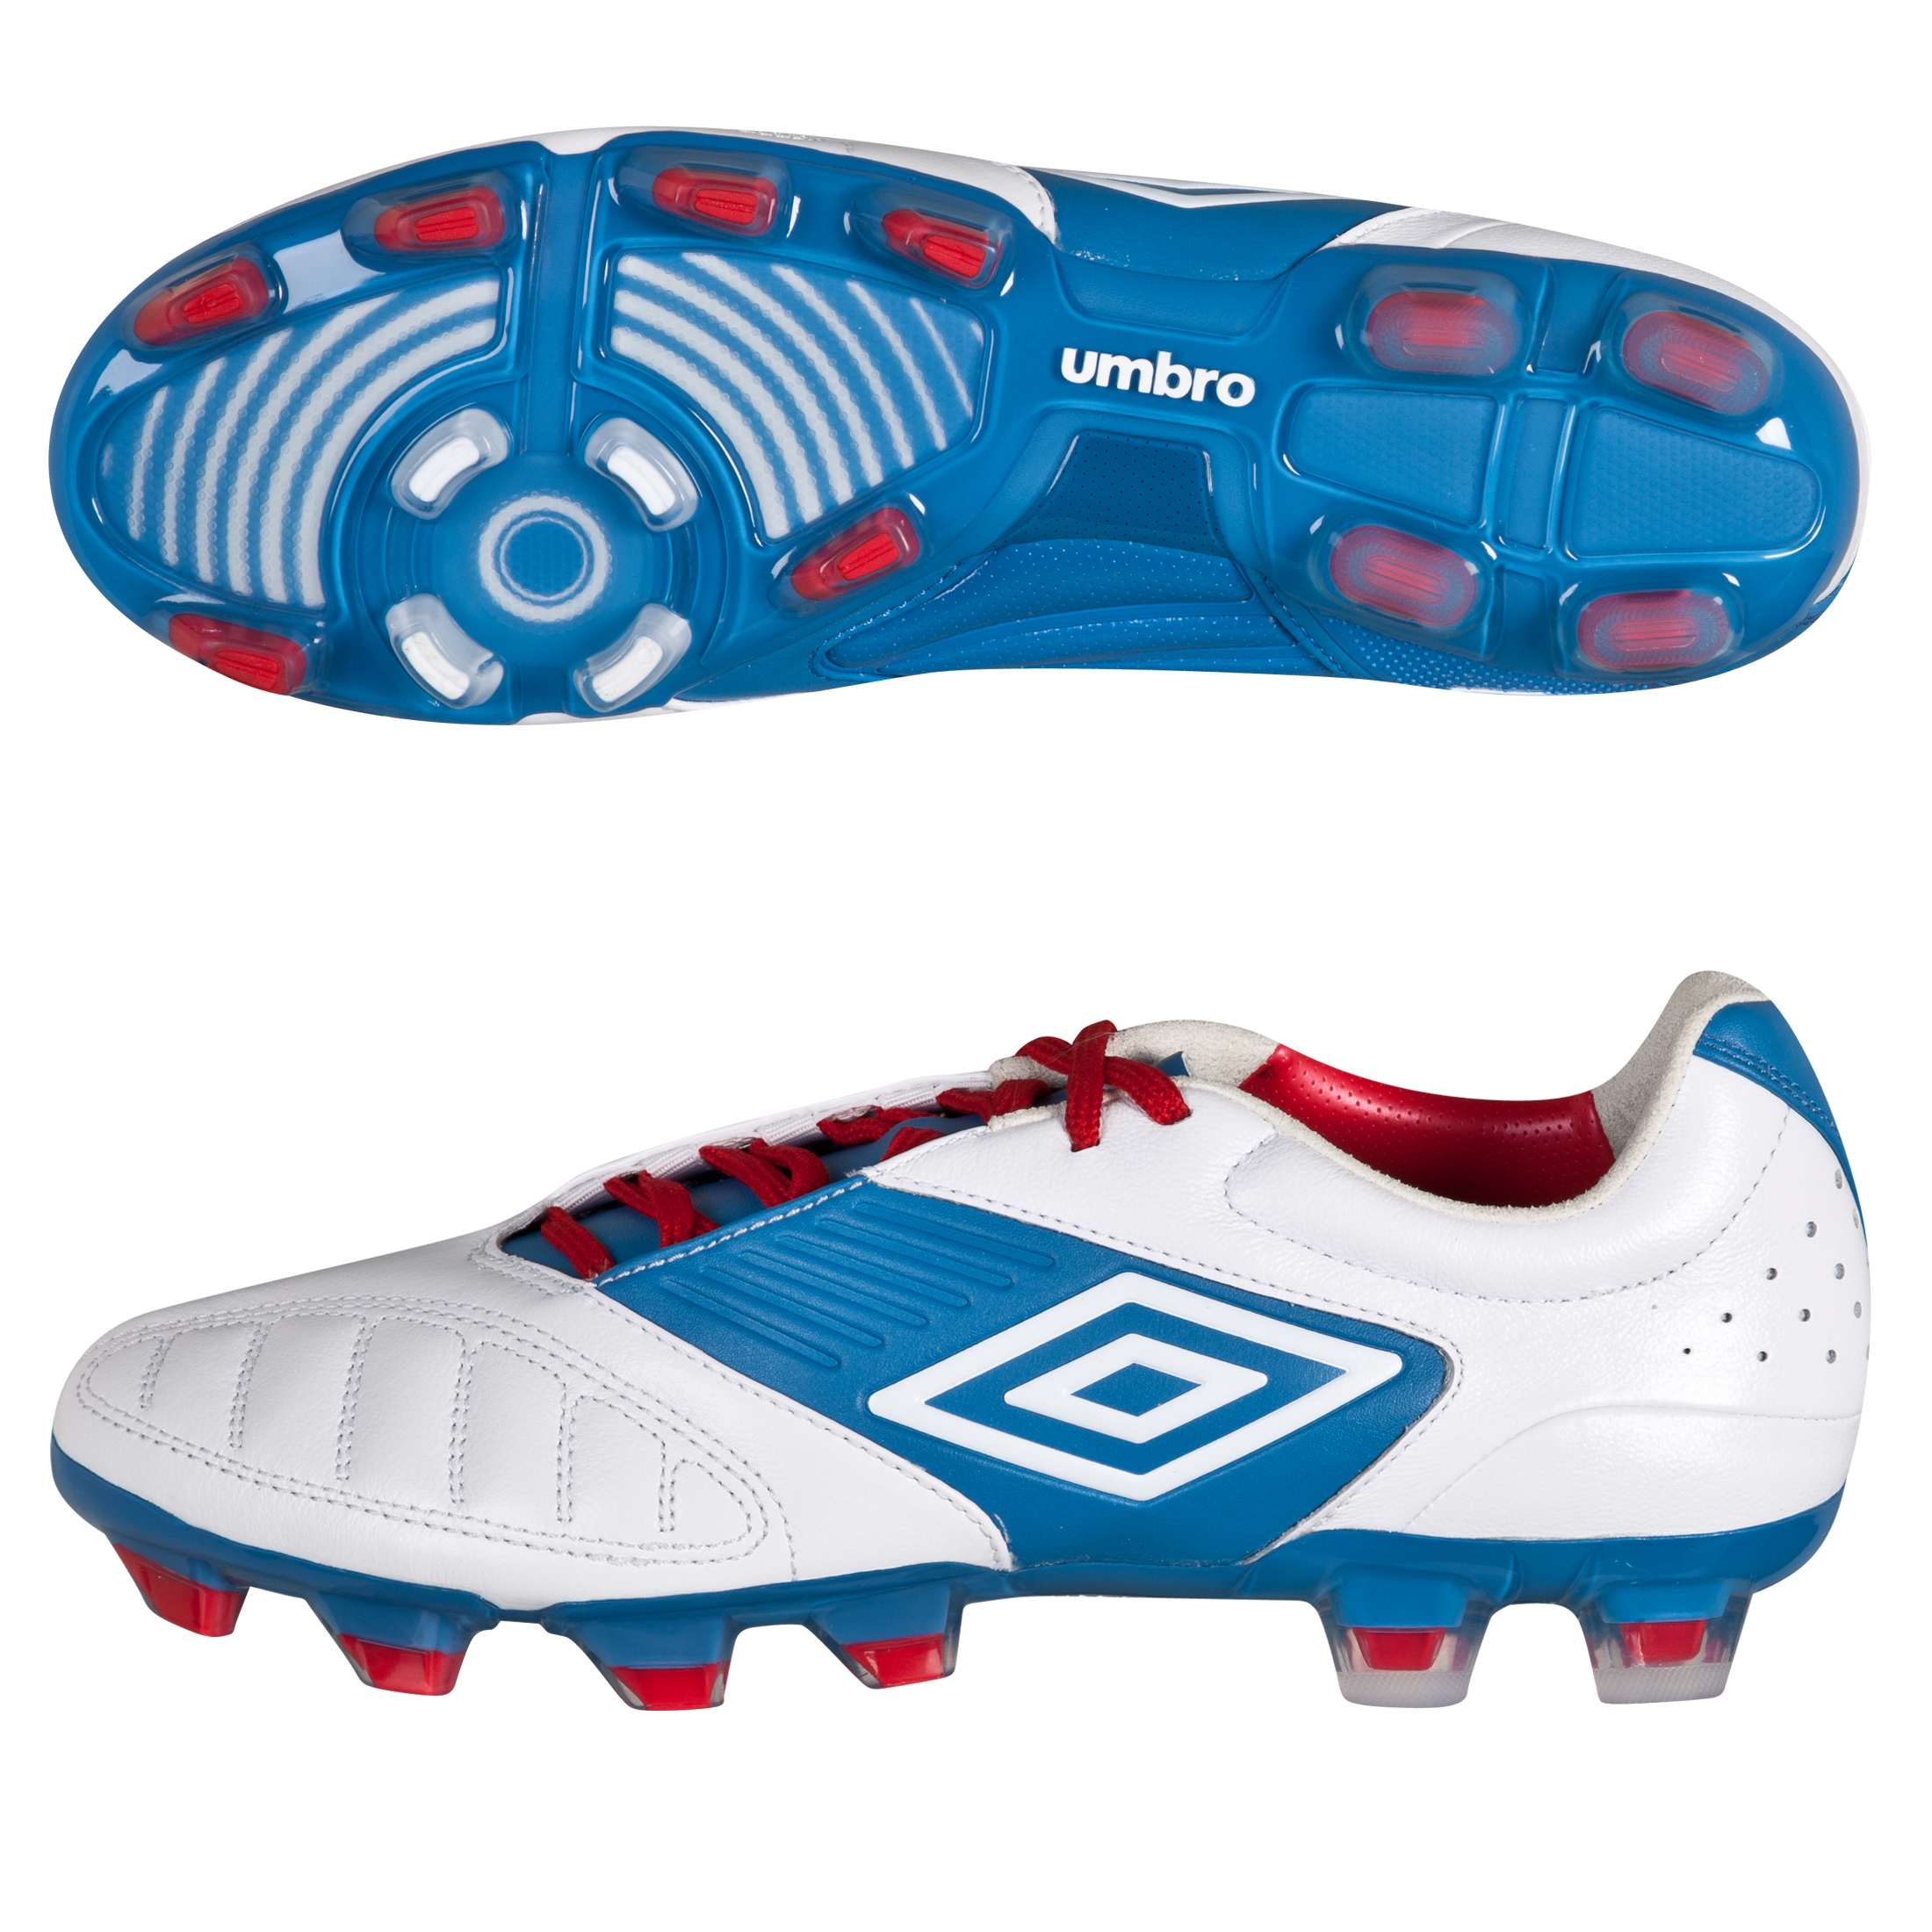 Umbro Geometra Pro Firm Ground Football Boots - White/Brilliant Blue/True Red